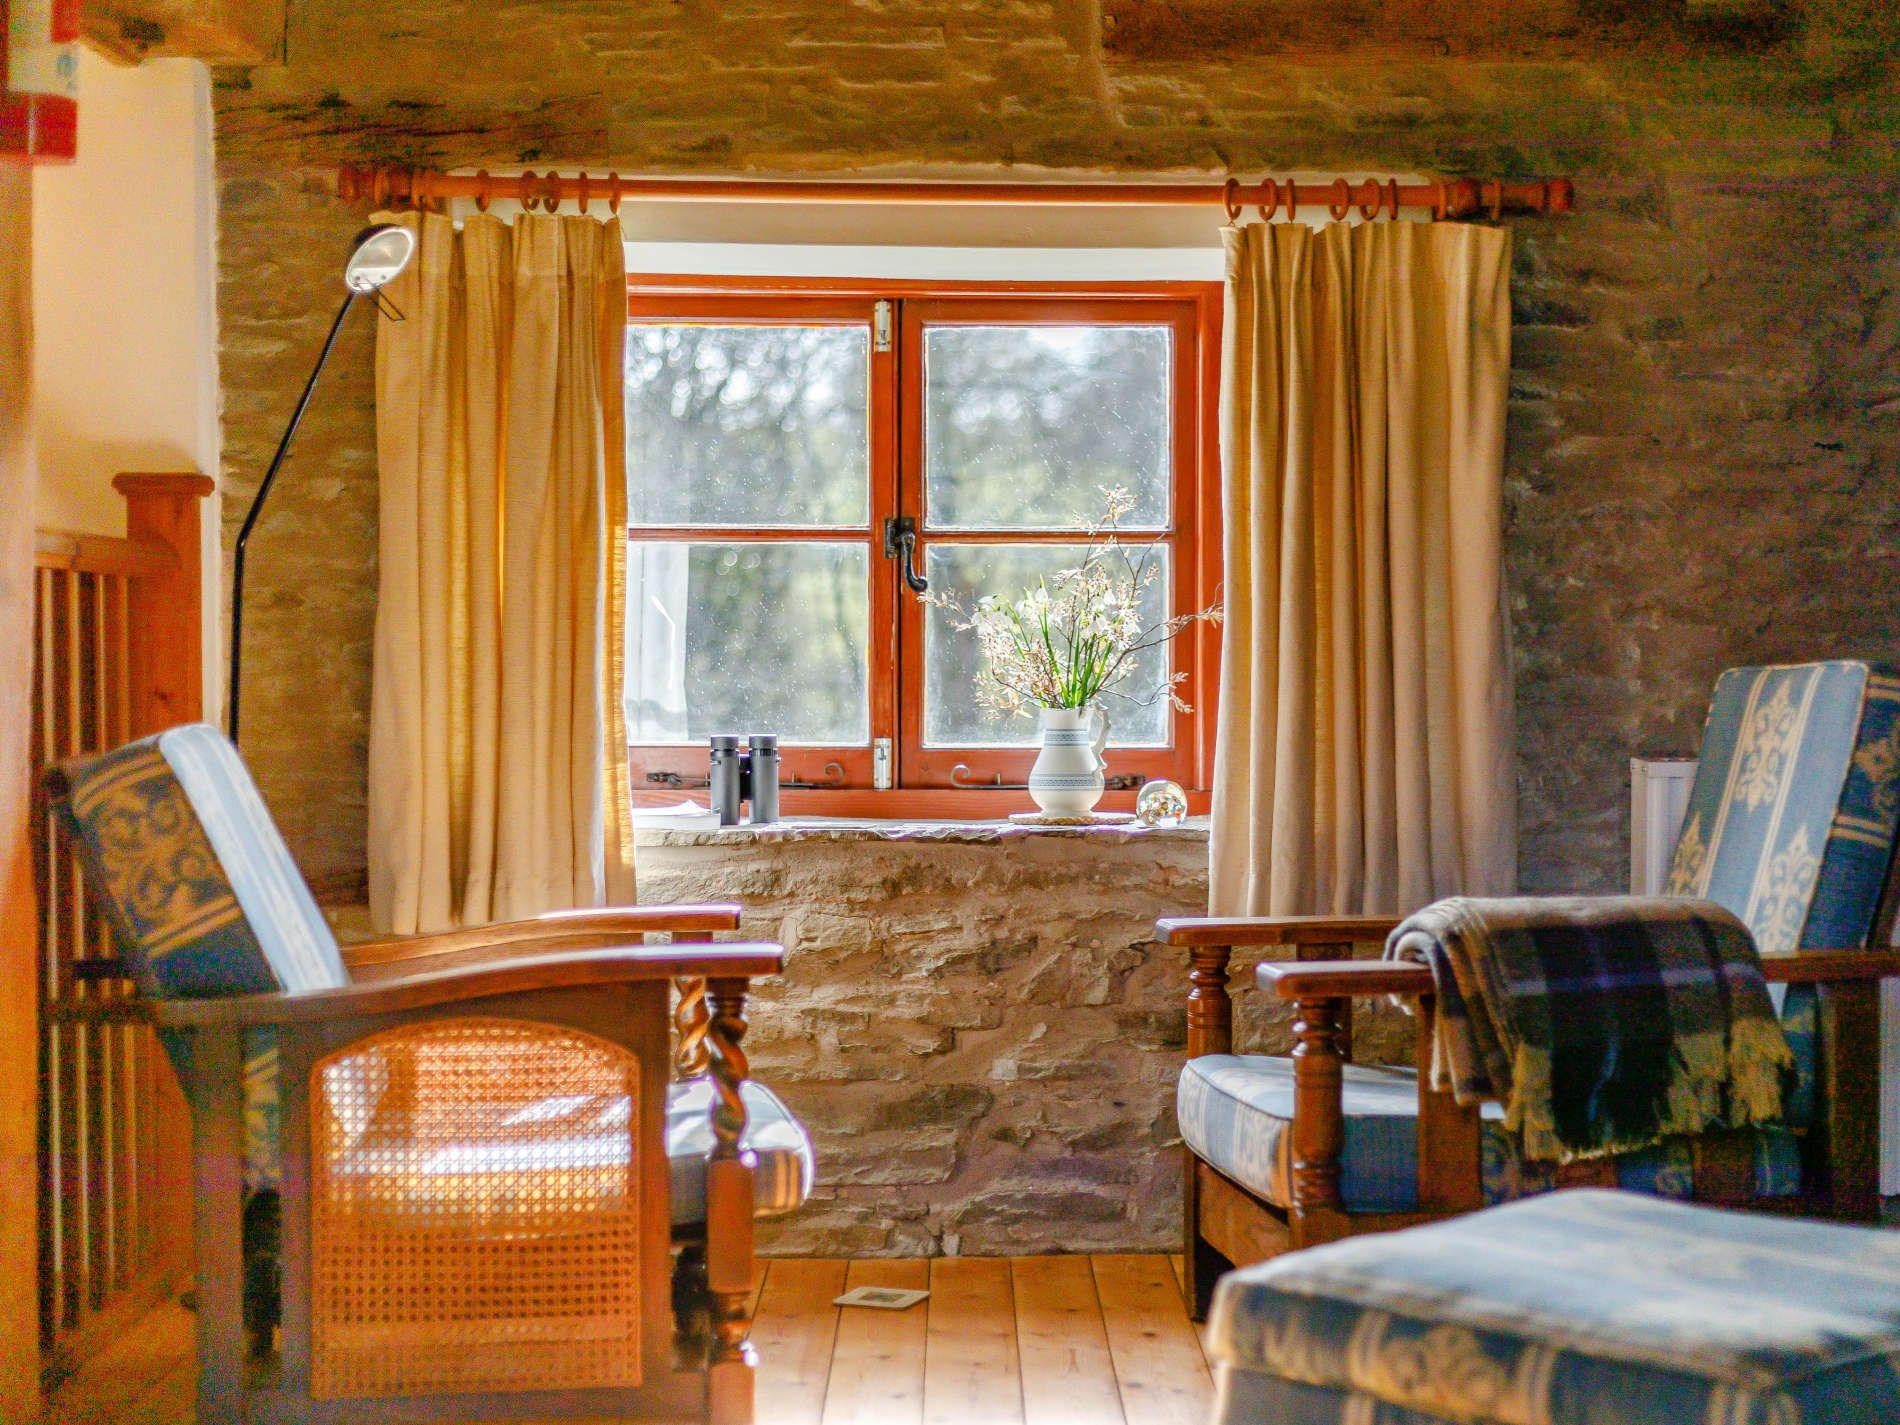 2 Bedroom Cottage in Herefordshire, Mid Wales